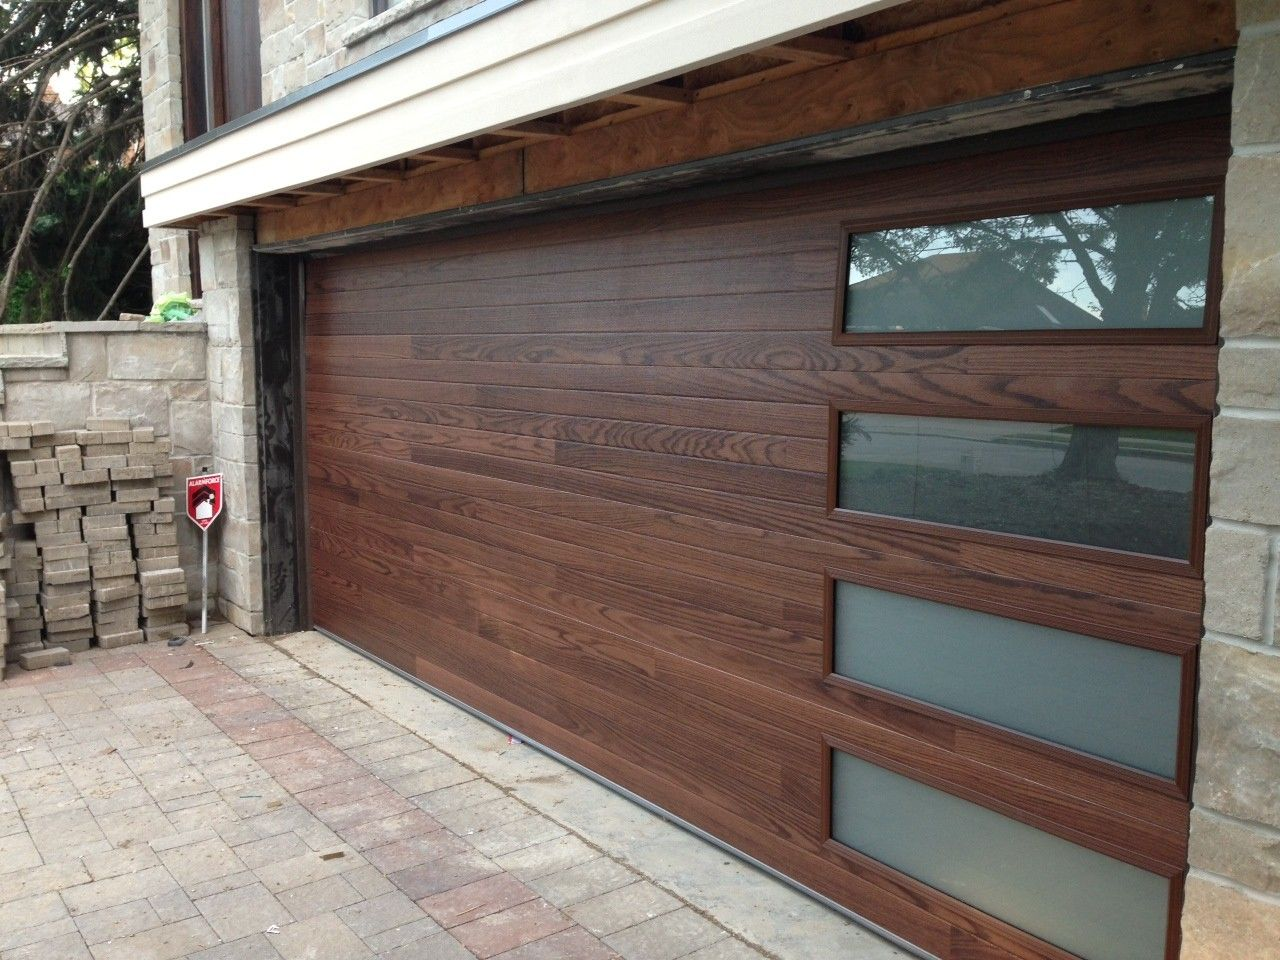 Modern Garage: Modern Garage Door, Modern 2 Car Garage Doors ... on screened porch door, door to door, single car garage door, 1 car garage door, restroom door, kitchen door, basement door, 4 car garage door, loading dock door, utility room door, six panel exterior door, bonus room door, master bedroom door, chicken coop door, craftsman wood front door, gate door, living room door, farmhouse style home depot back door, barn door, three car garage door,